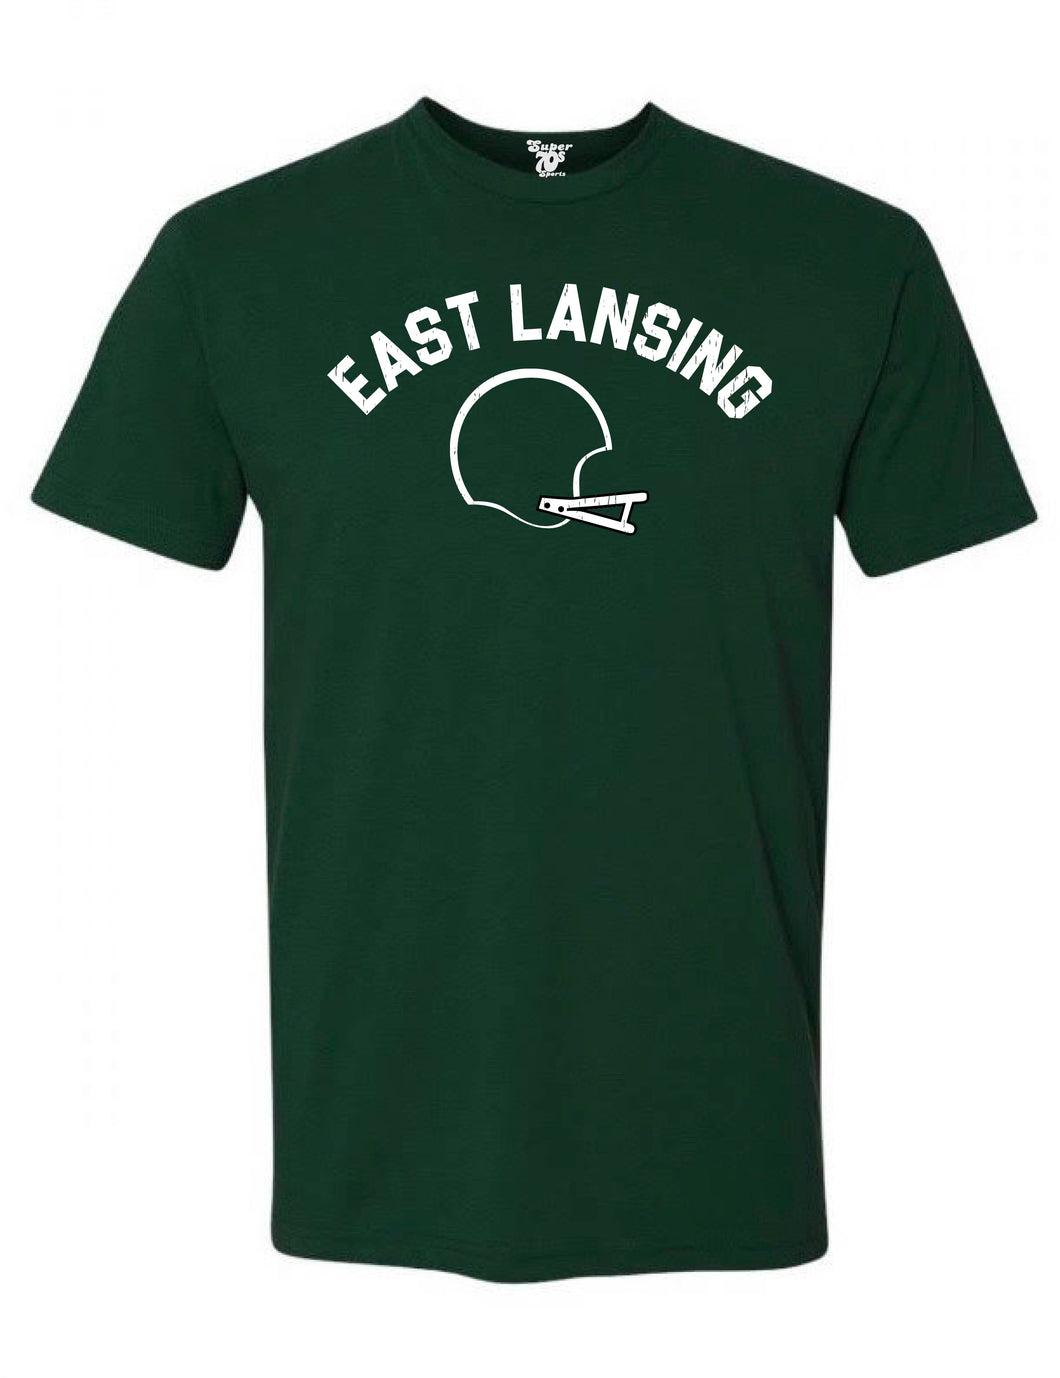 East Lansing Football Tee